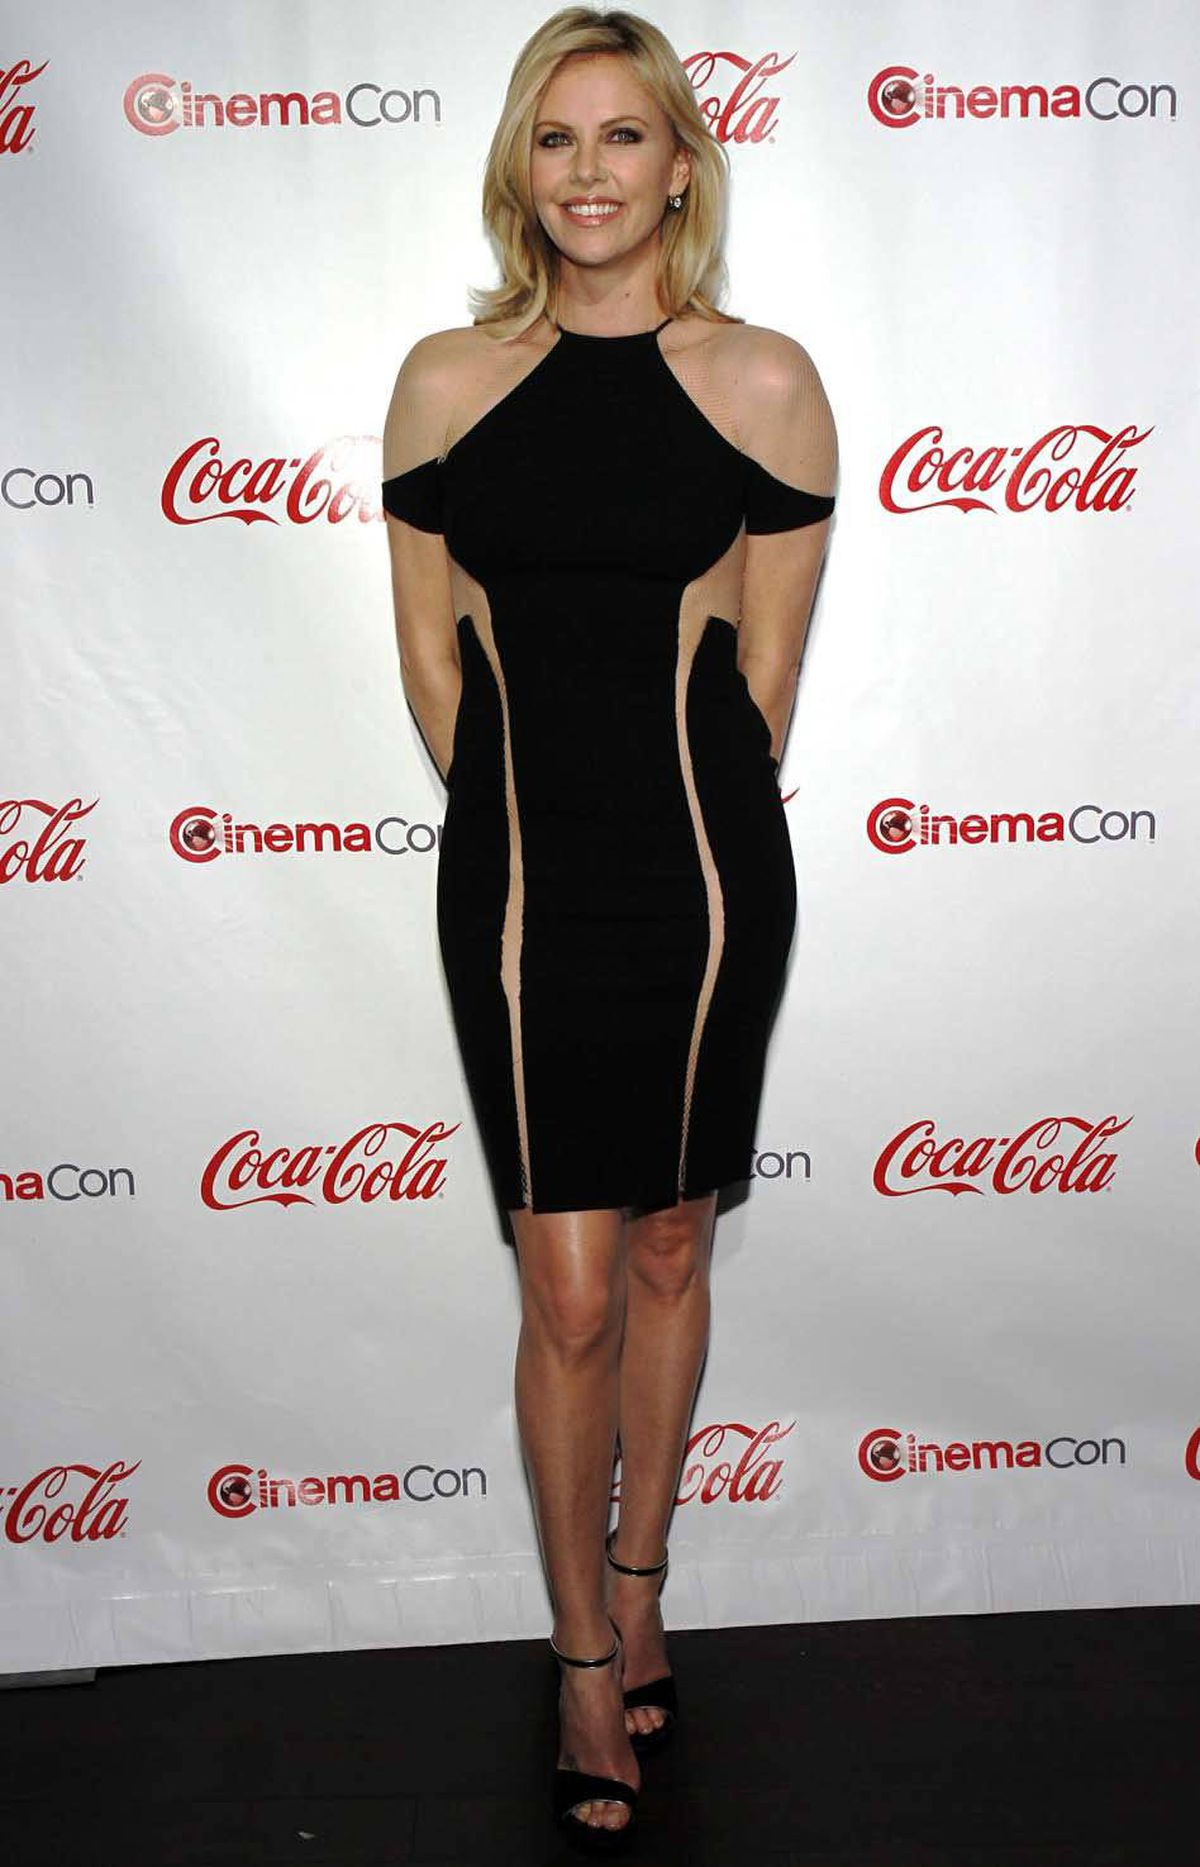 Here is Charlize Theron at the CinemaCon Big Screen Achievement Awards in Las Vegas last week wearing a theoretically impossible dress in your actually impossible dream.